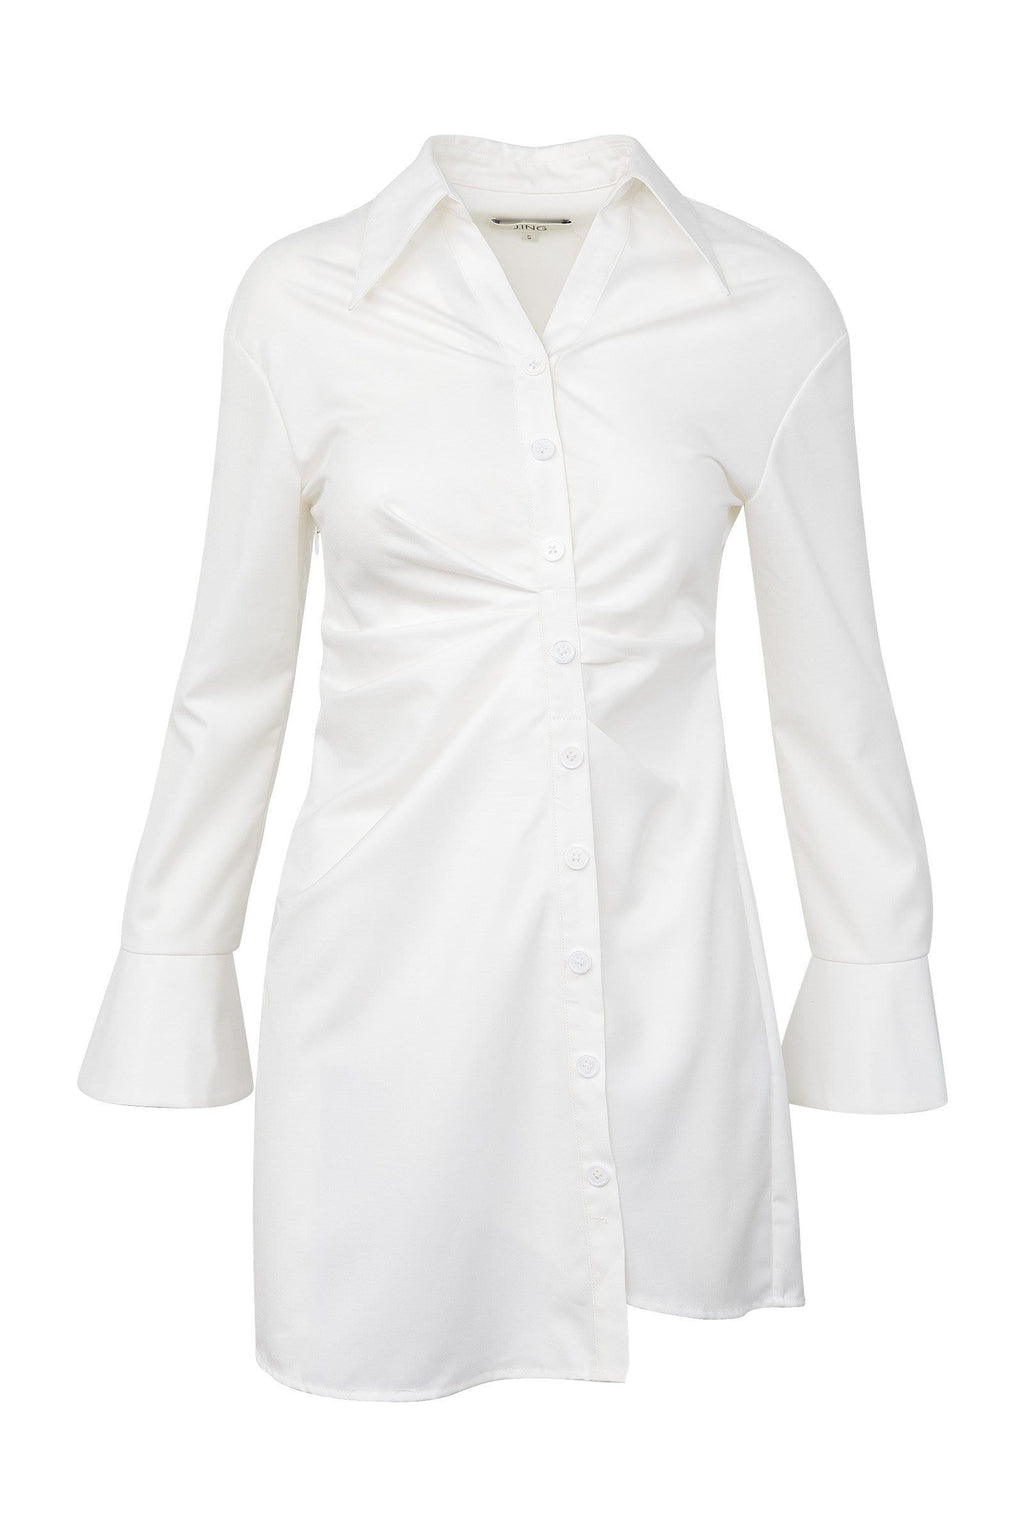 Dina White Shirt Dress by J.ING Women's Apparel